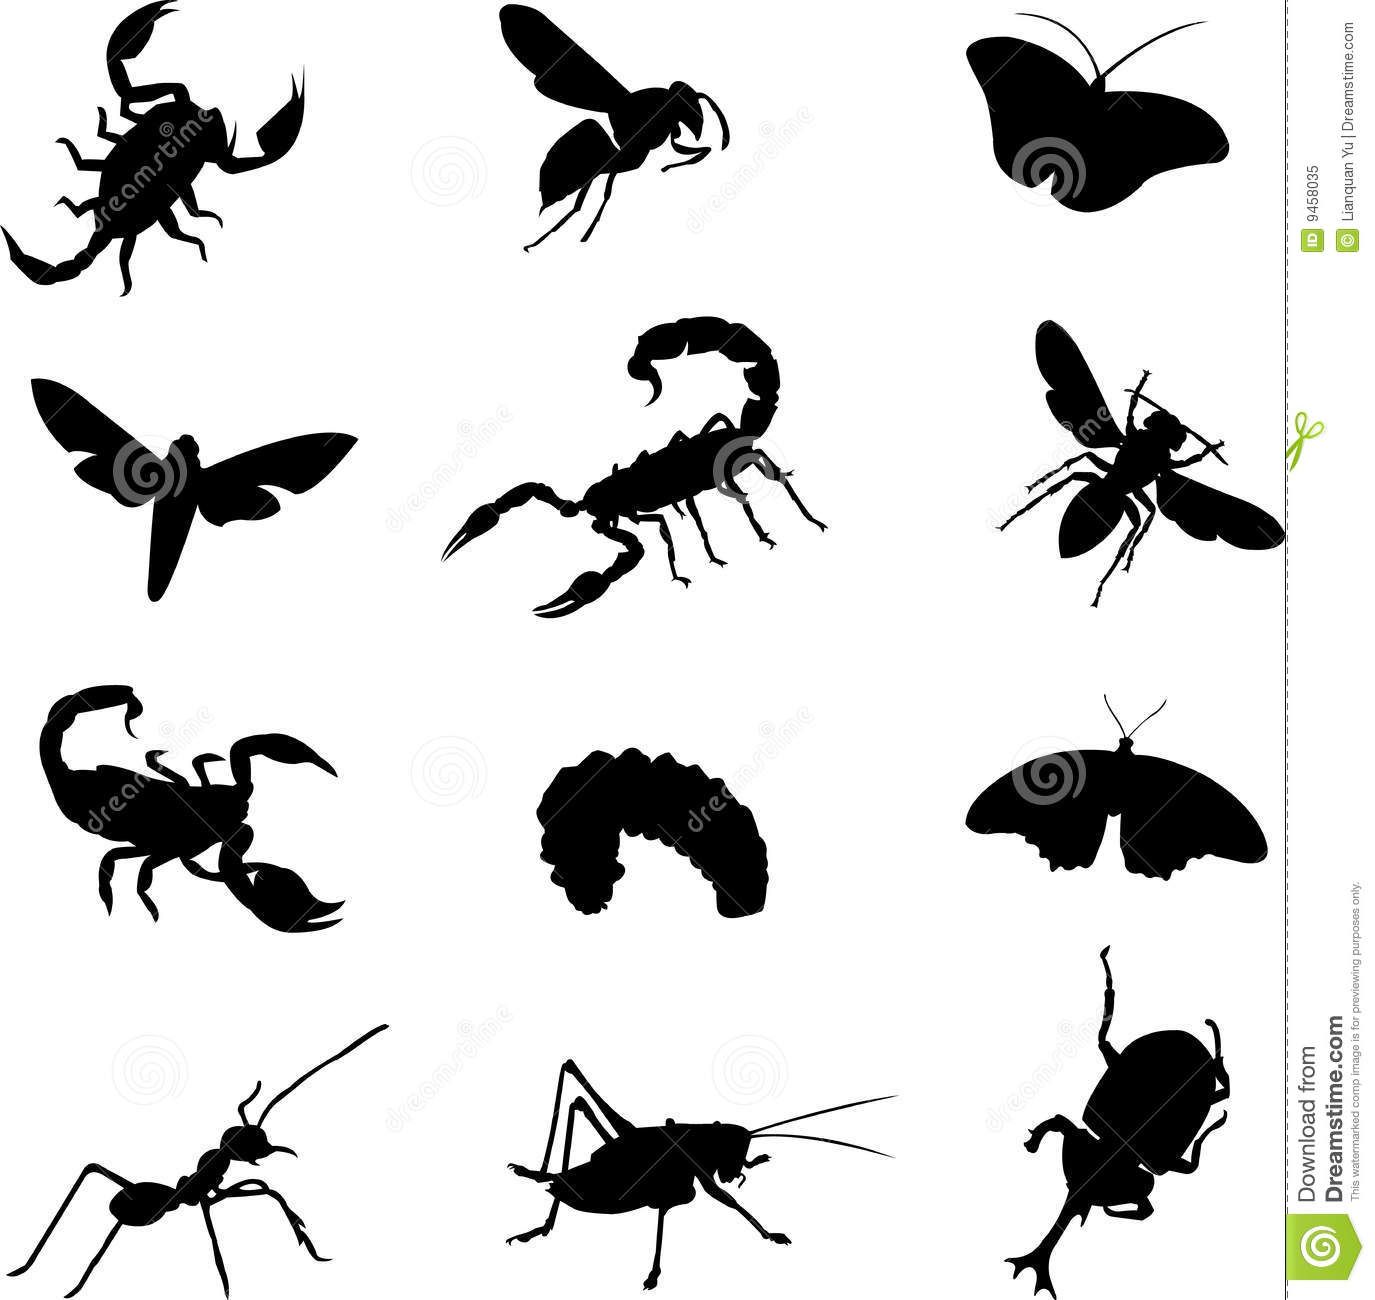 Various Types Of Insects Royalty Free Stock Photo - Image: 9458035